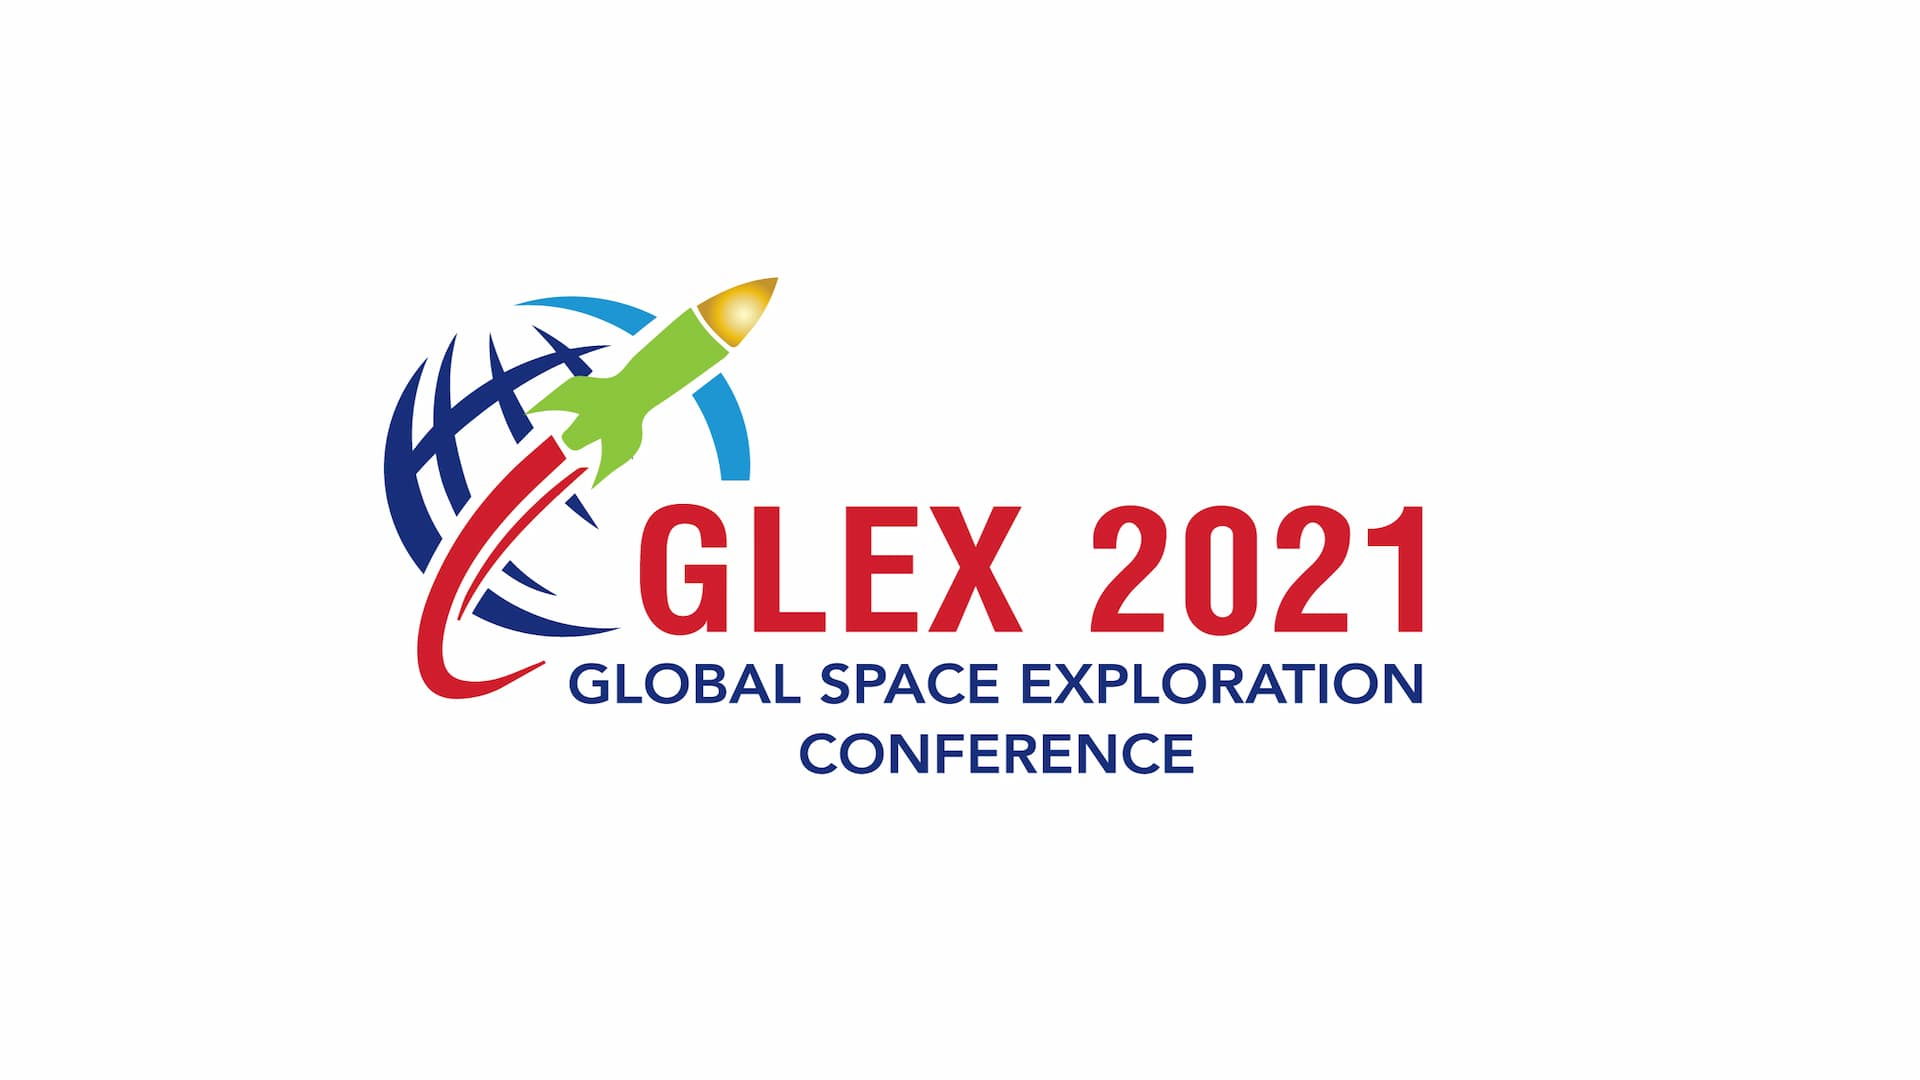 ASI - Global Space Exploration Conference (GLEX) 2021